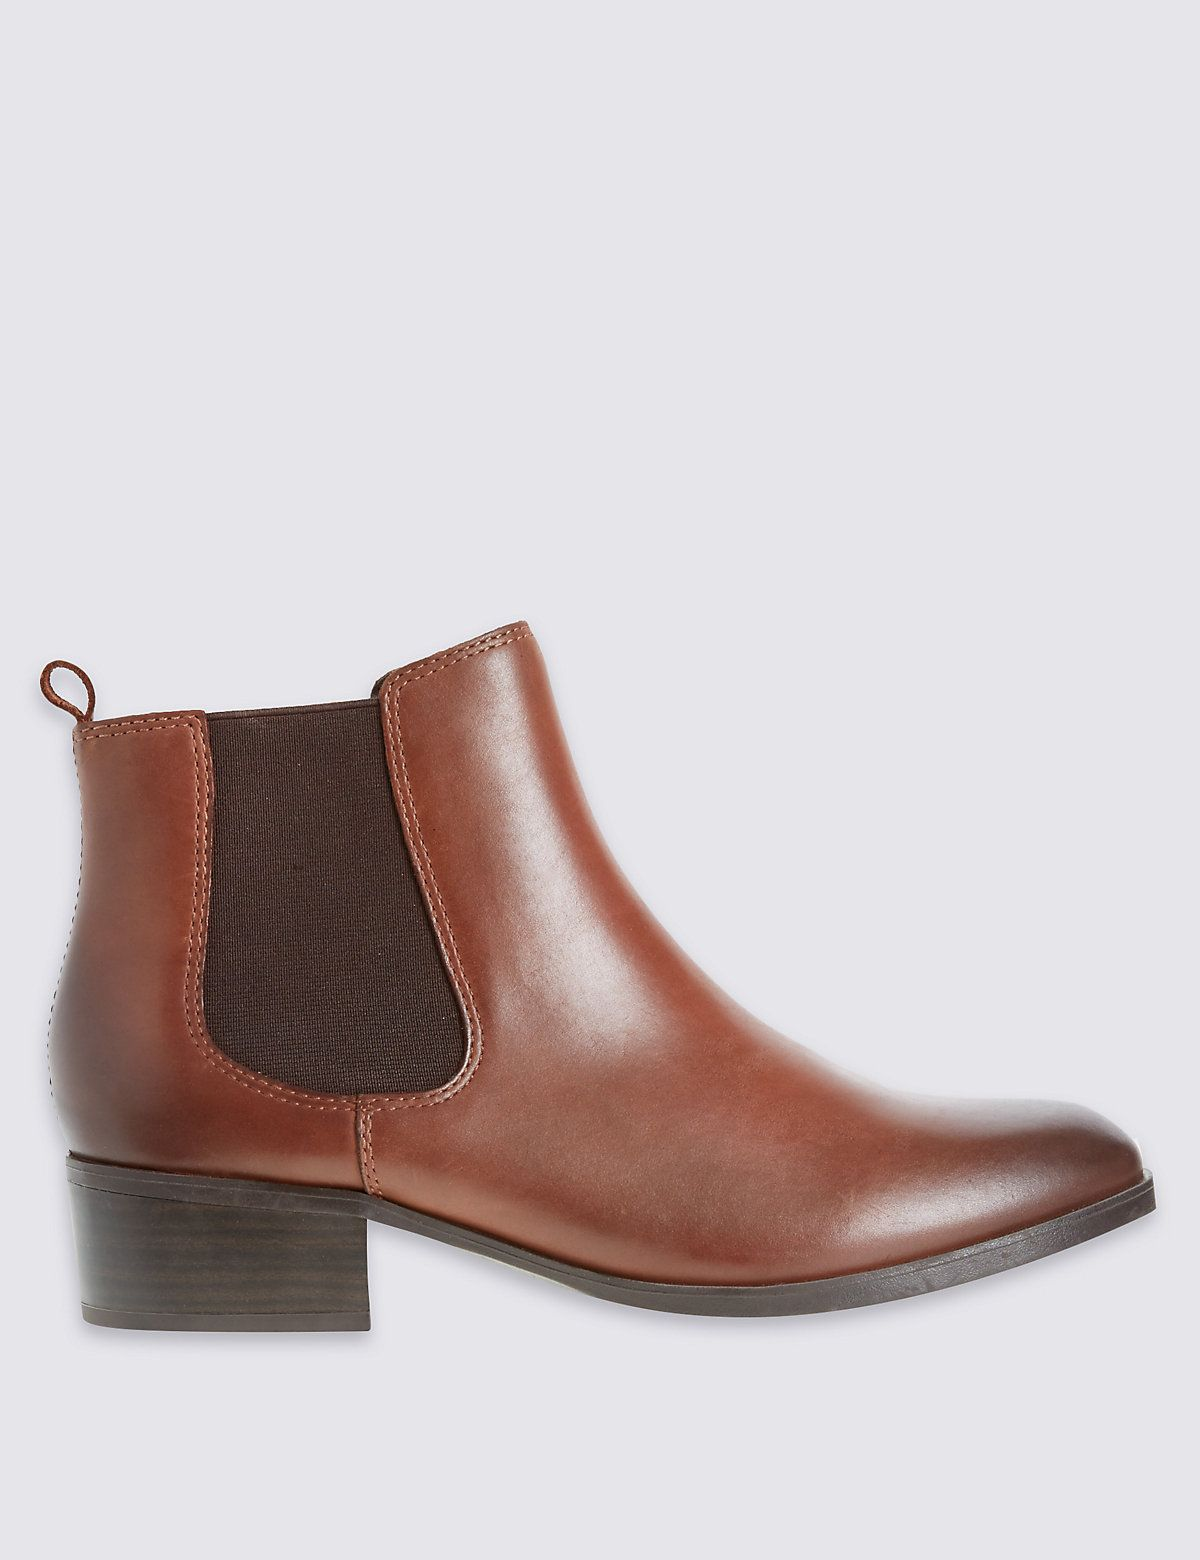 da351d5ccc86 Wide Fit Leather Block Heel Ankle Boots